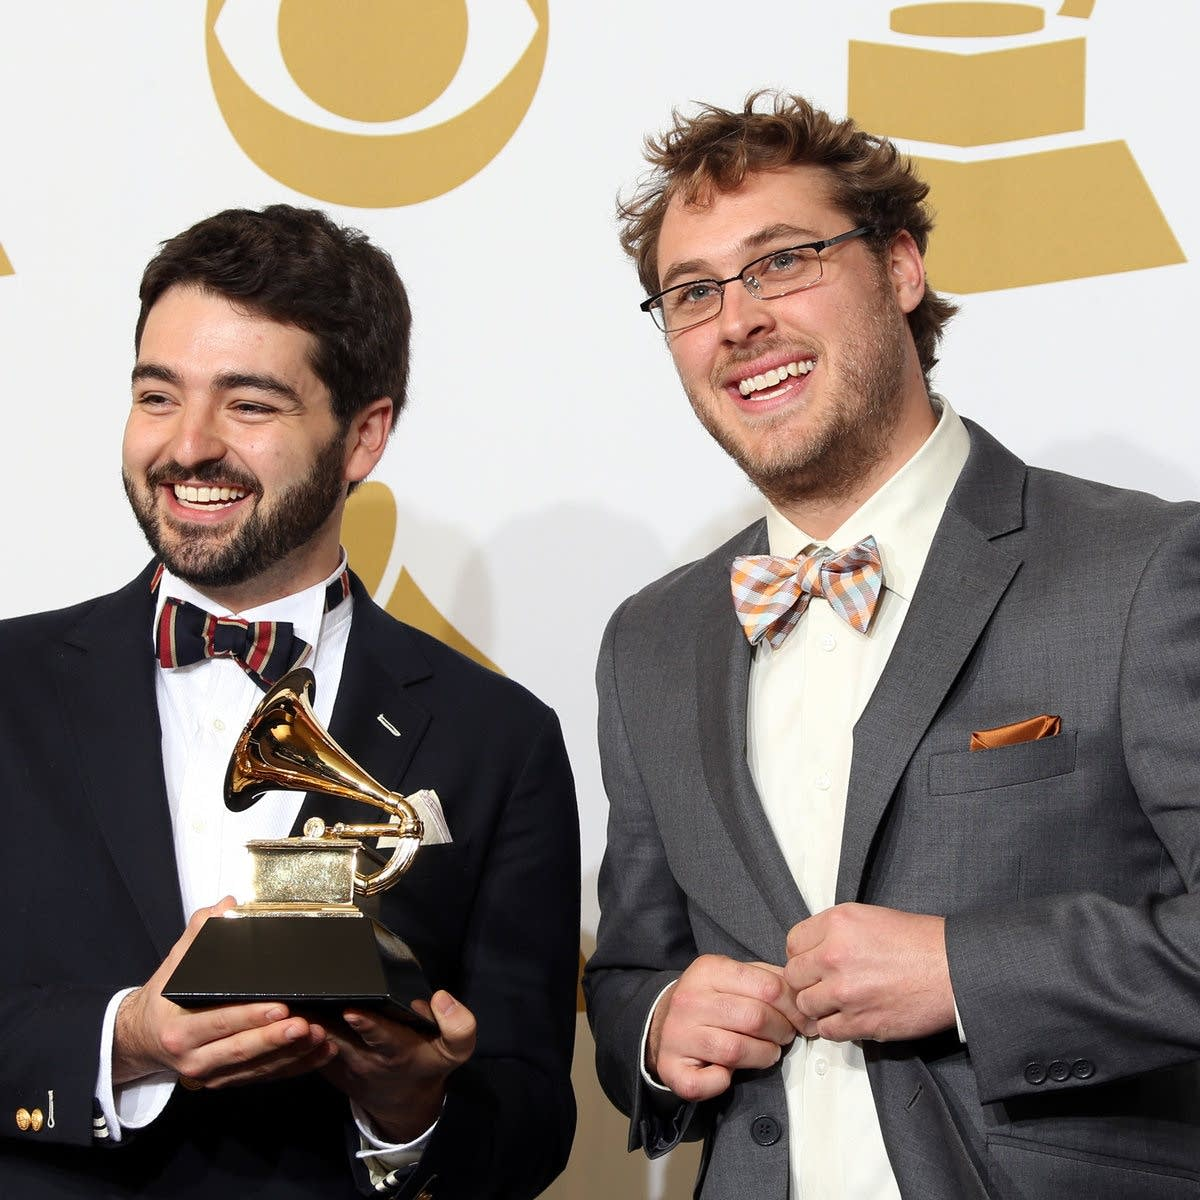 The Okee Dokee Brothers - 55th Annual GRAMMY Awards - Press Room